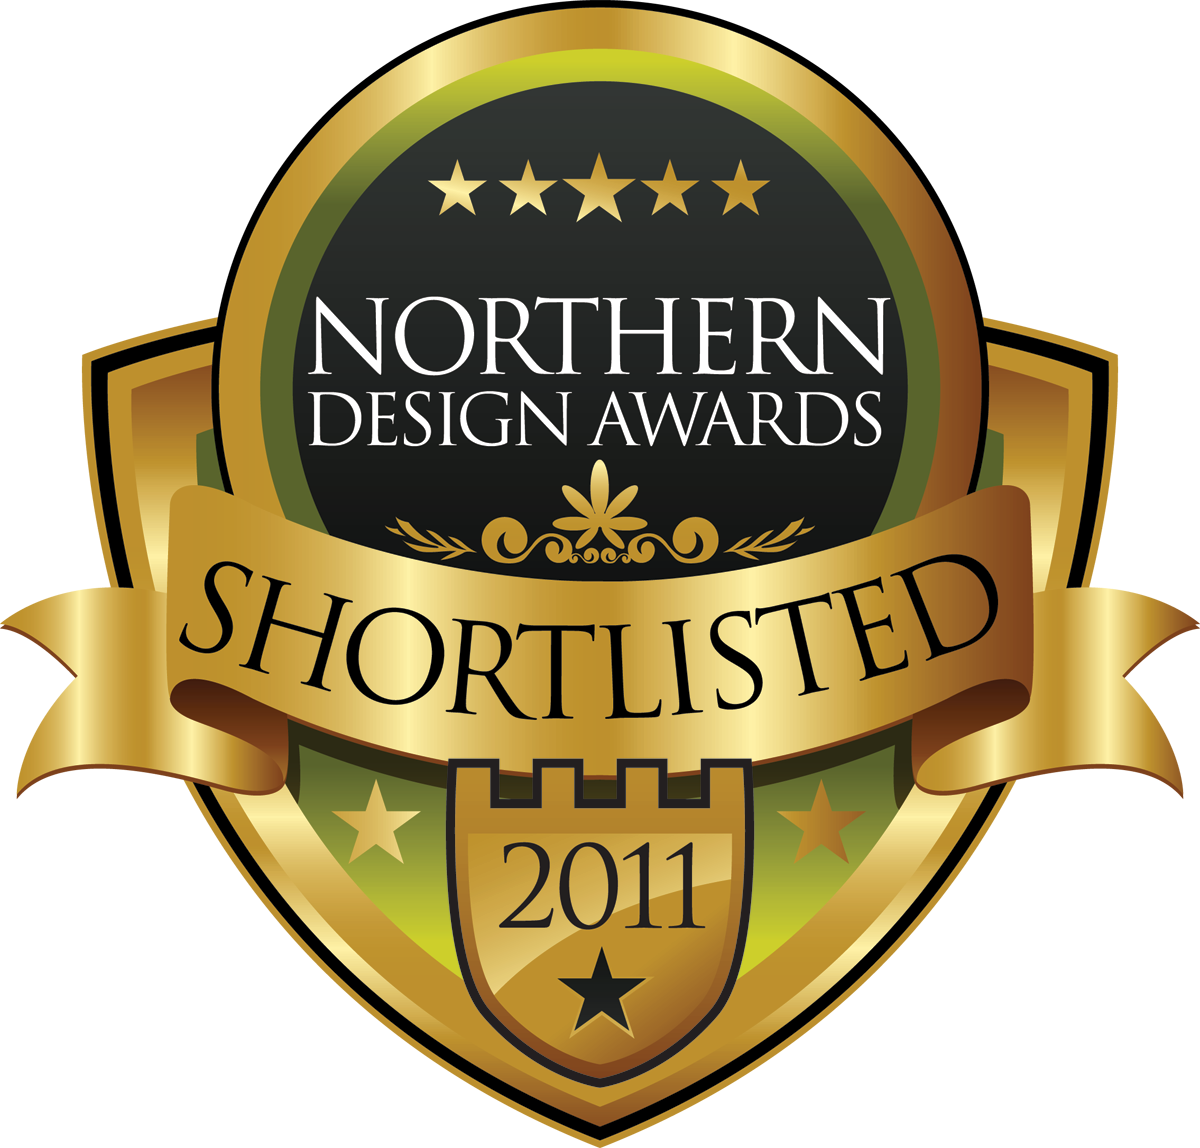 David keegans garden design blog david keegan garden for Garden design awards